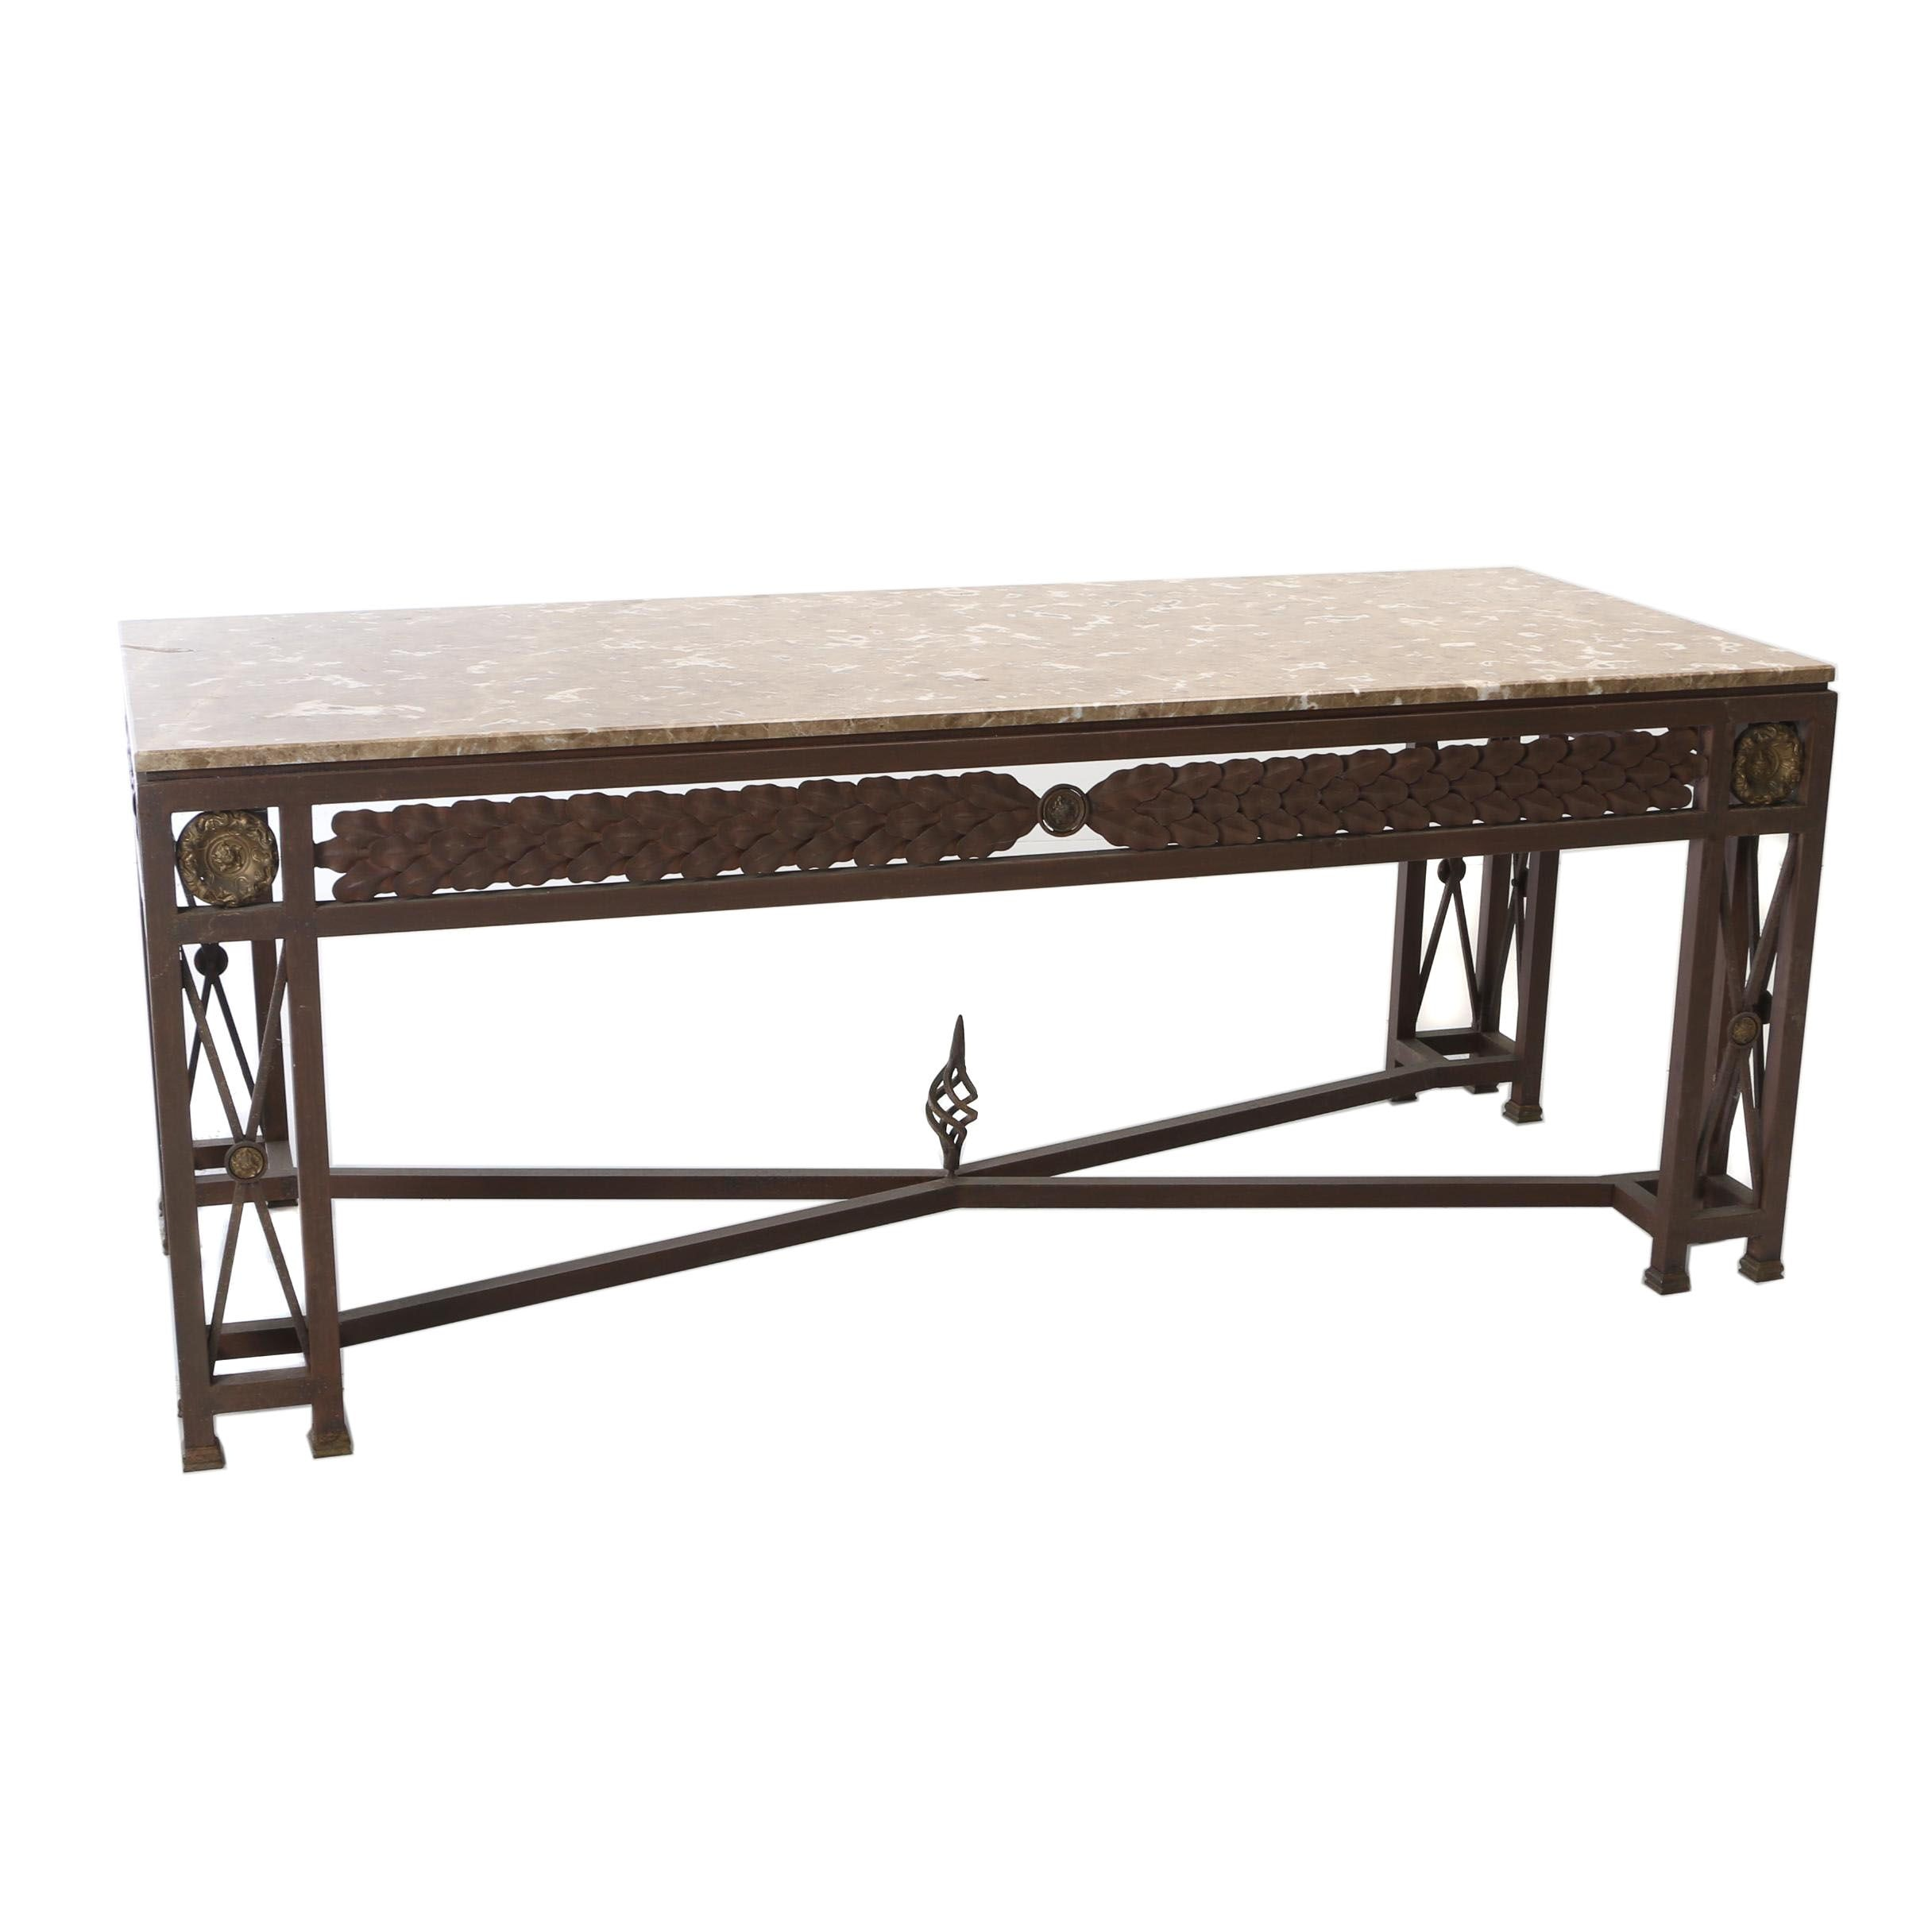 Contemporary Neoclassical Style Metal and Brown Marble Dining Table